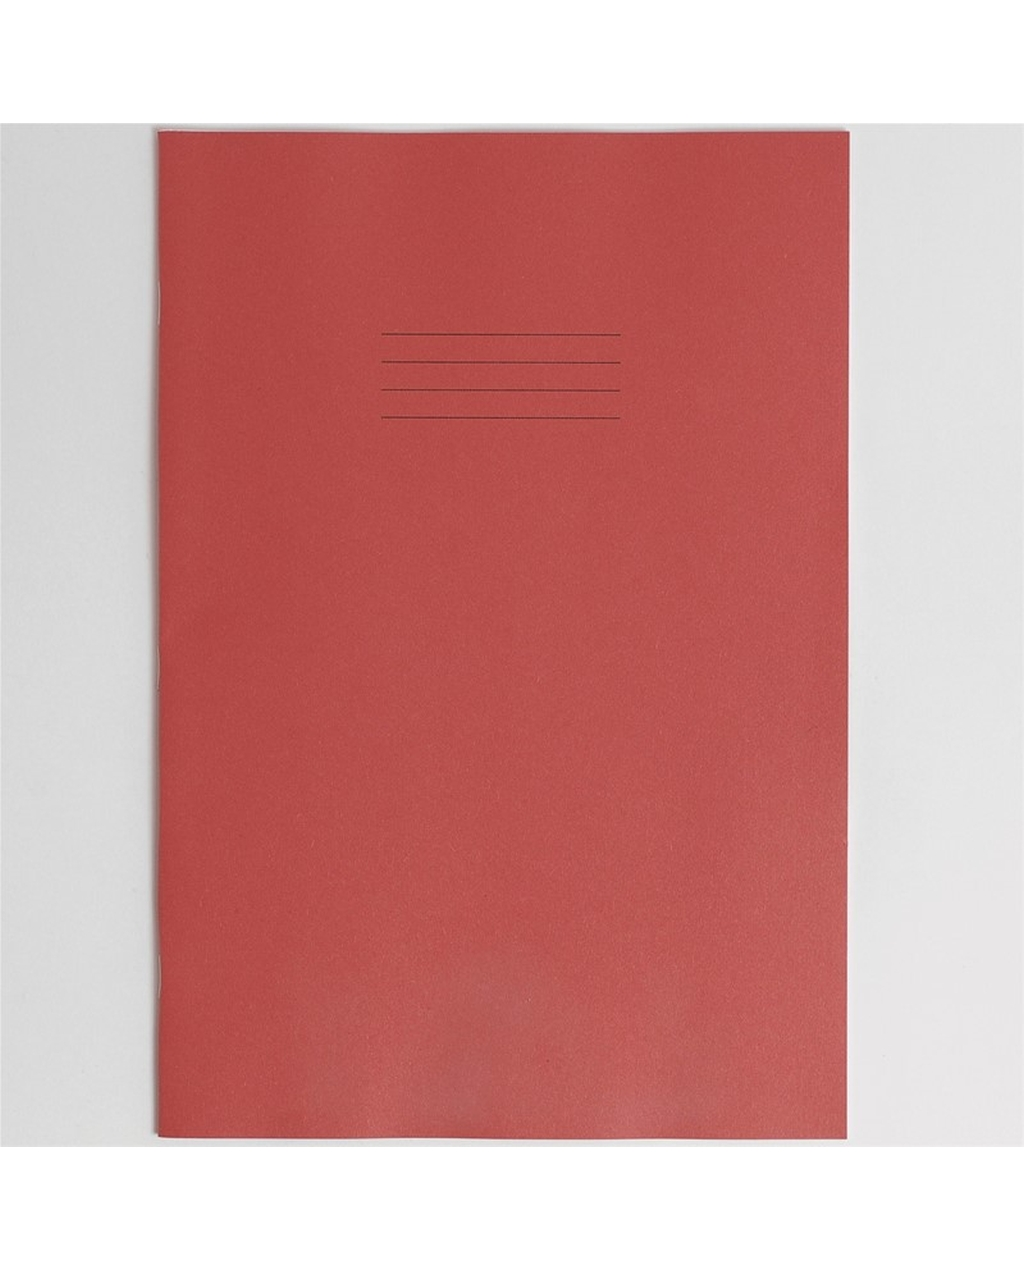 Exercise Book A4+ size (330 x 250mm) Red Cover Plain - No Ruling 40 Pages